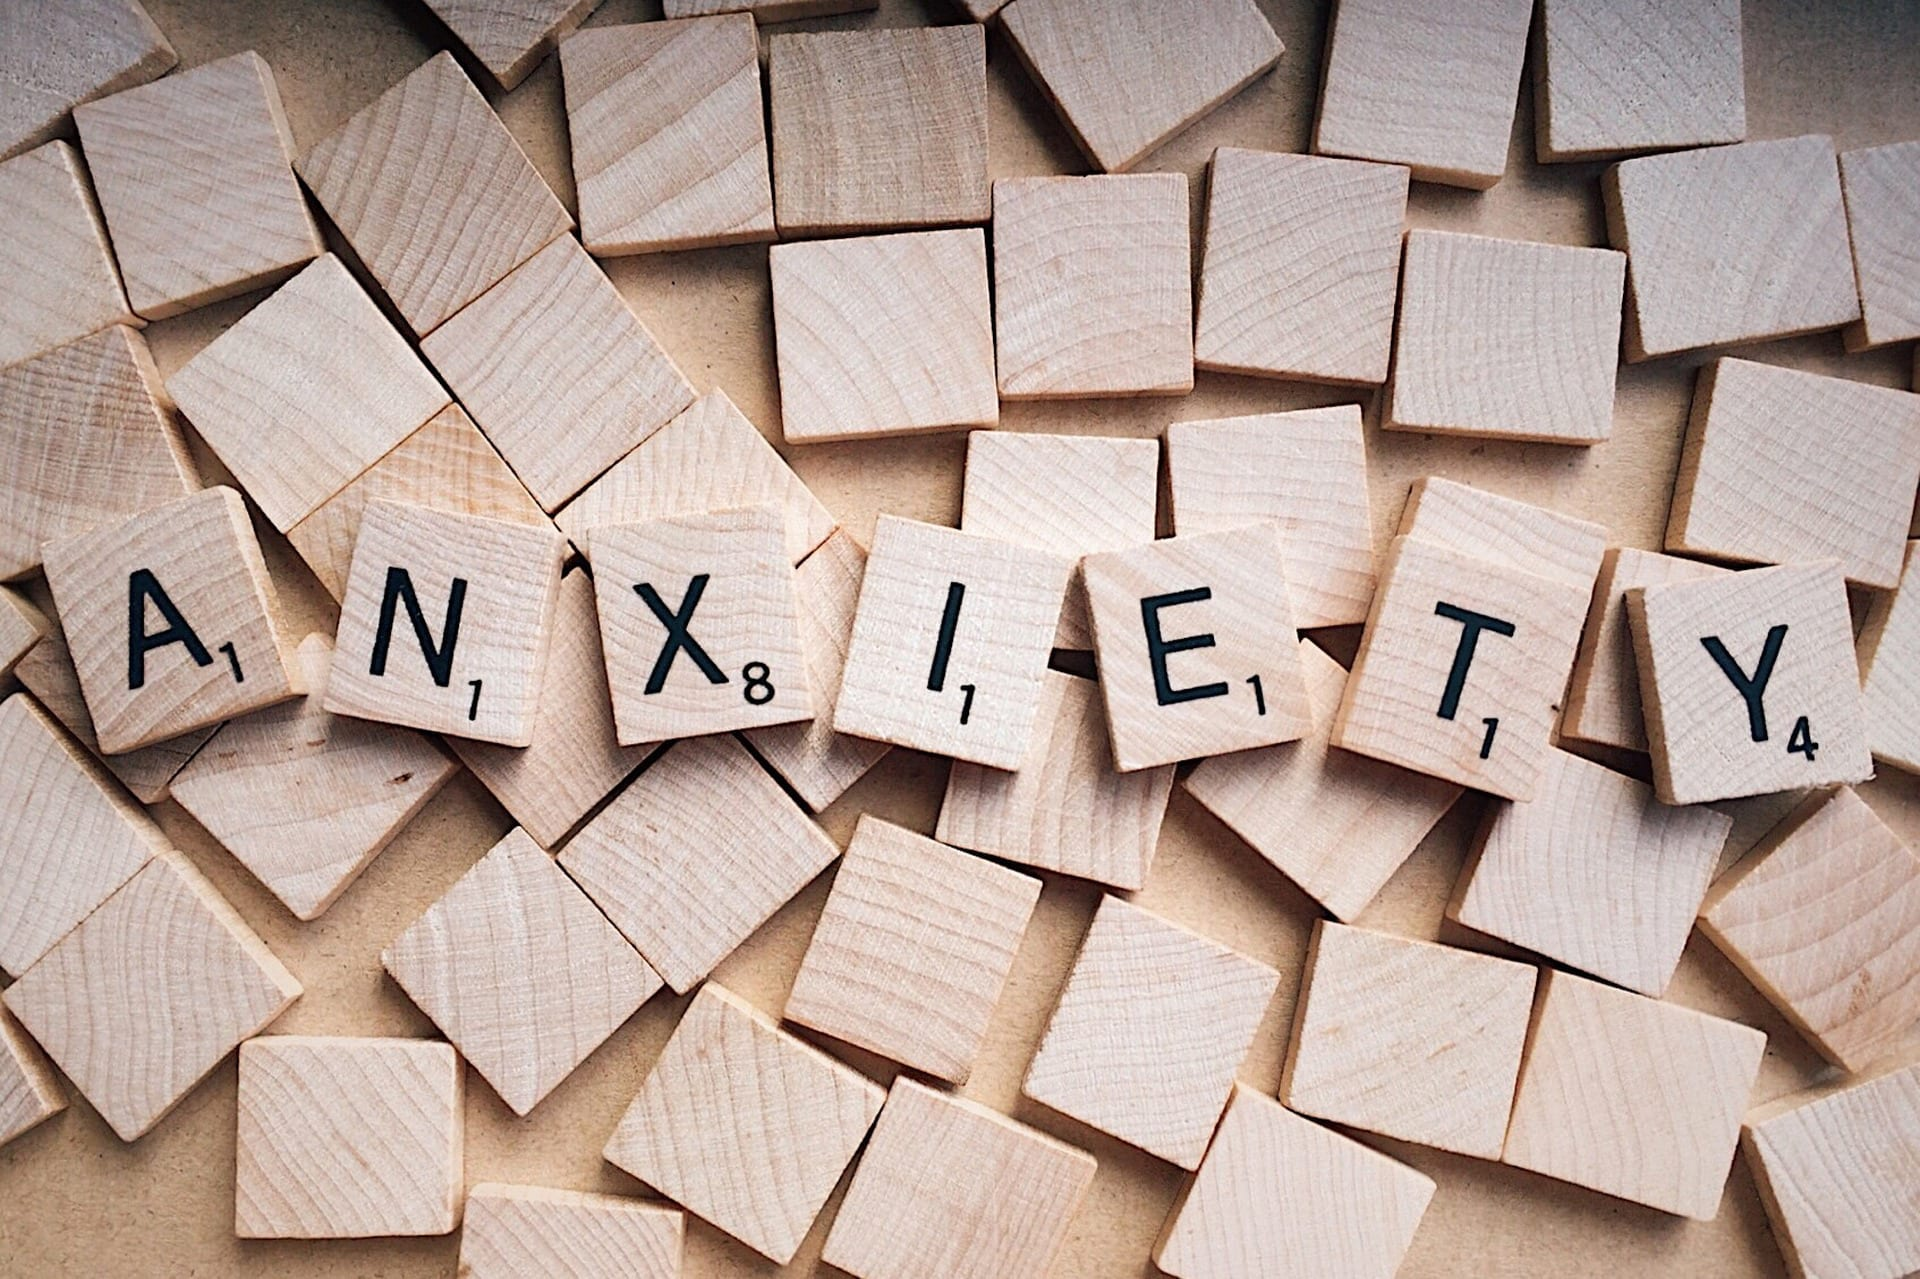 Scrabble pieces spelling out the word anxiety, highlighting the topic of this piece, managing anxiety